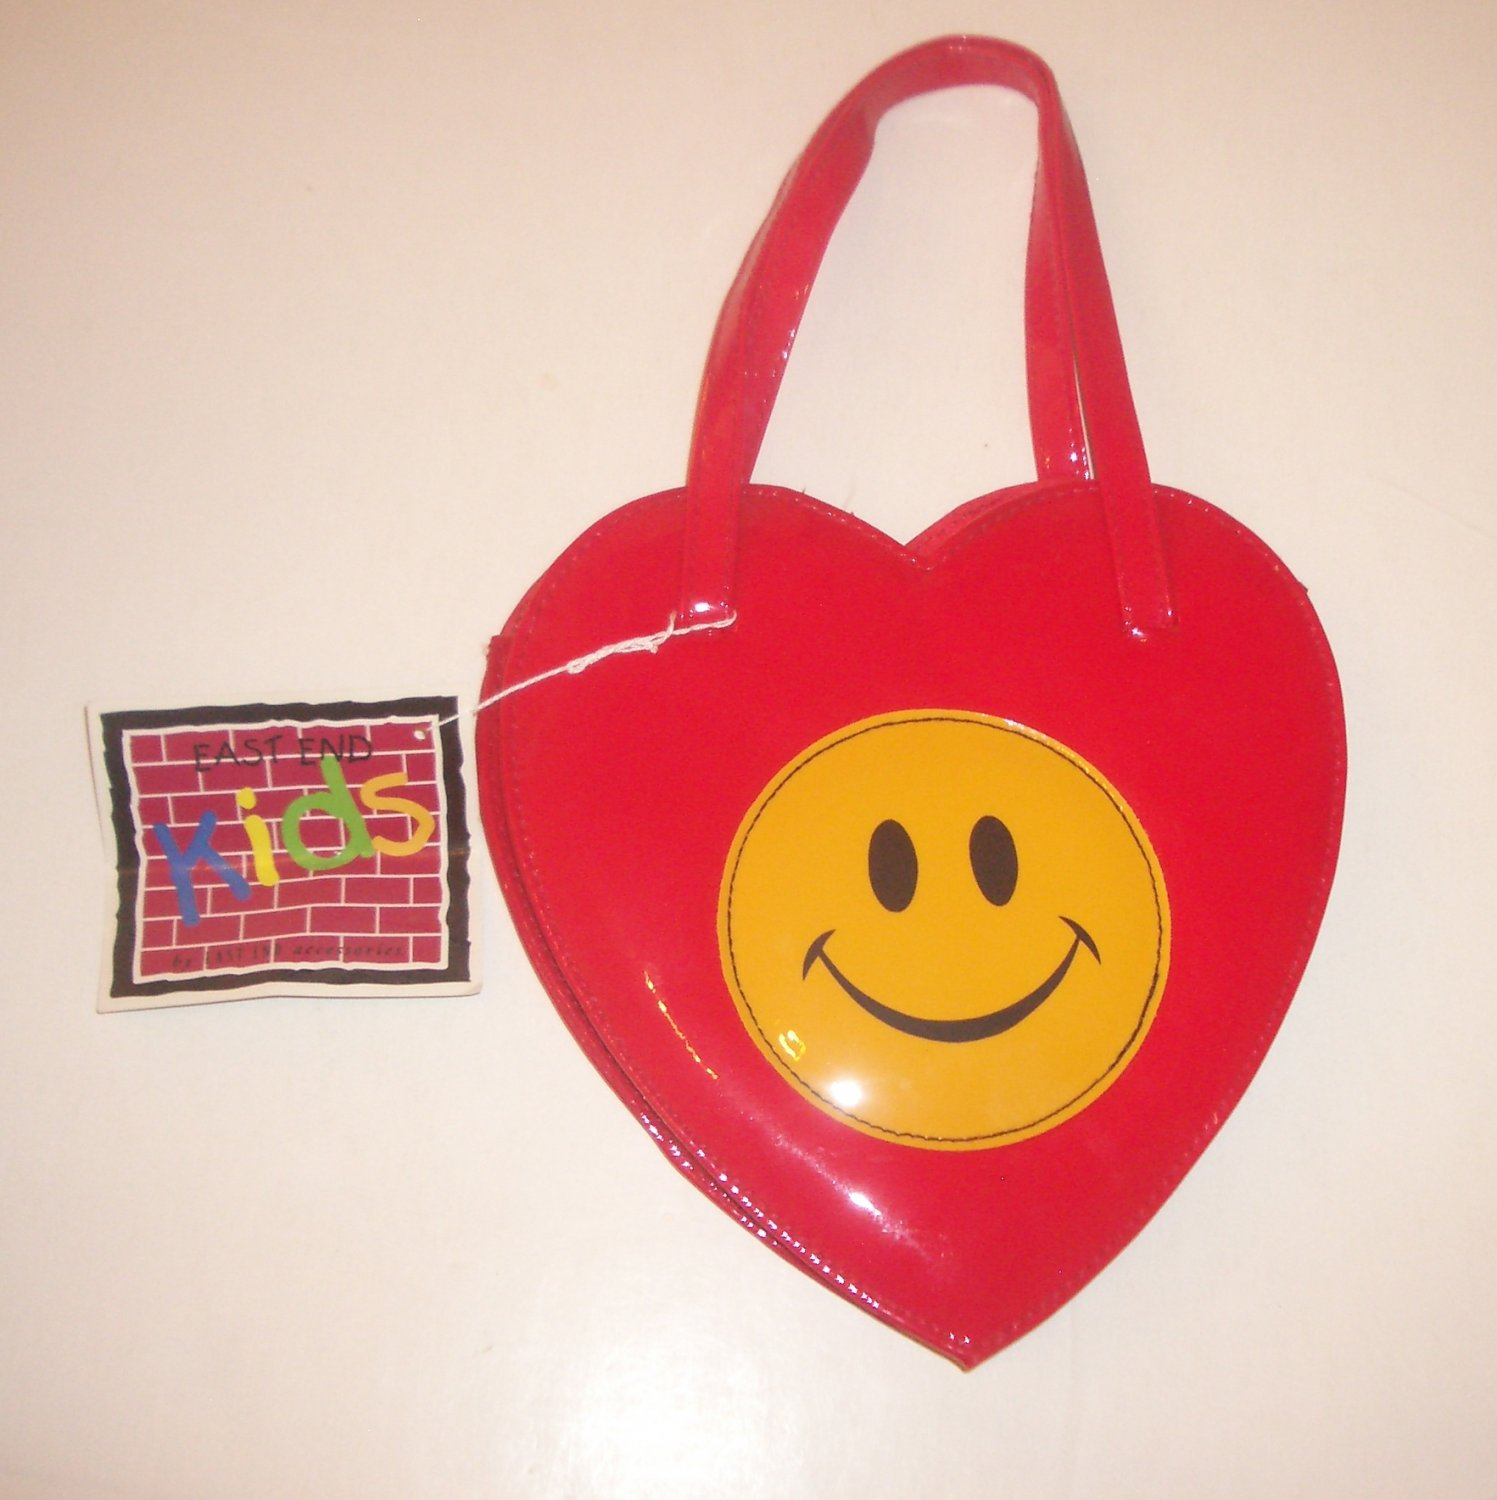 East End Kids Smiley Face Plastic Novelty Purse Red Heart Shaped Cute!